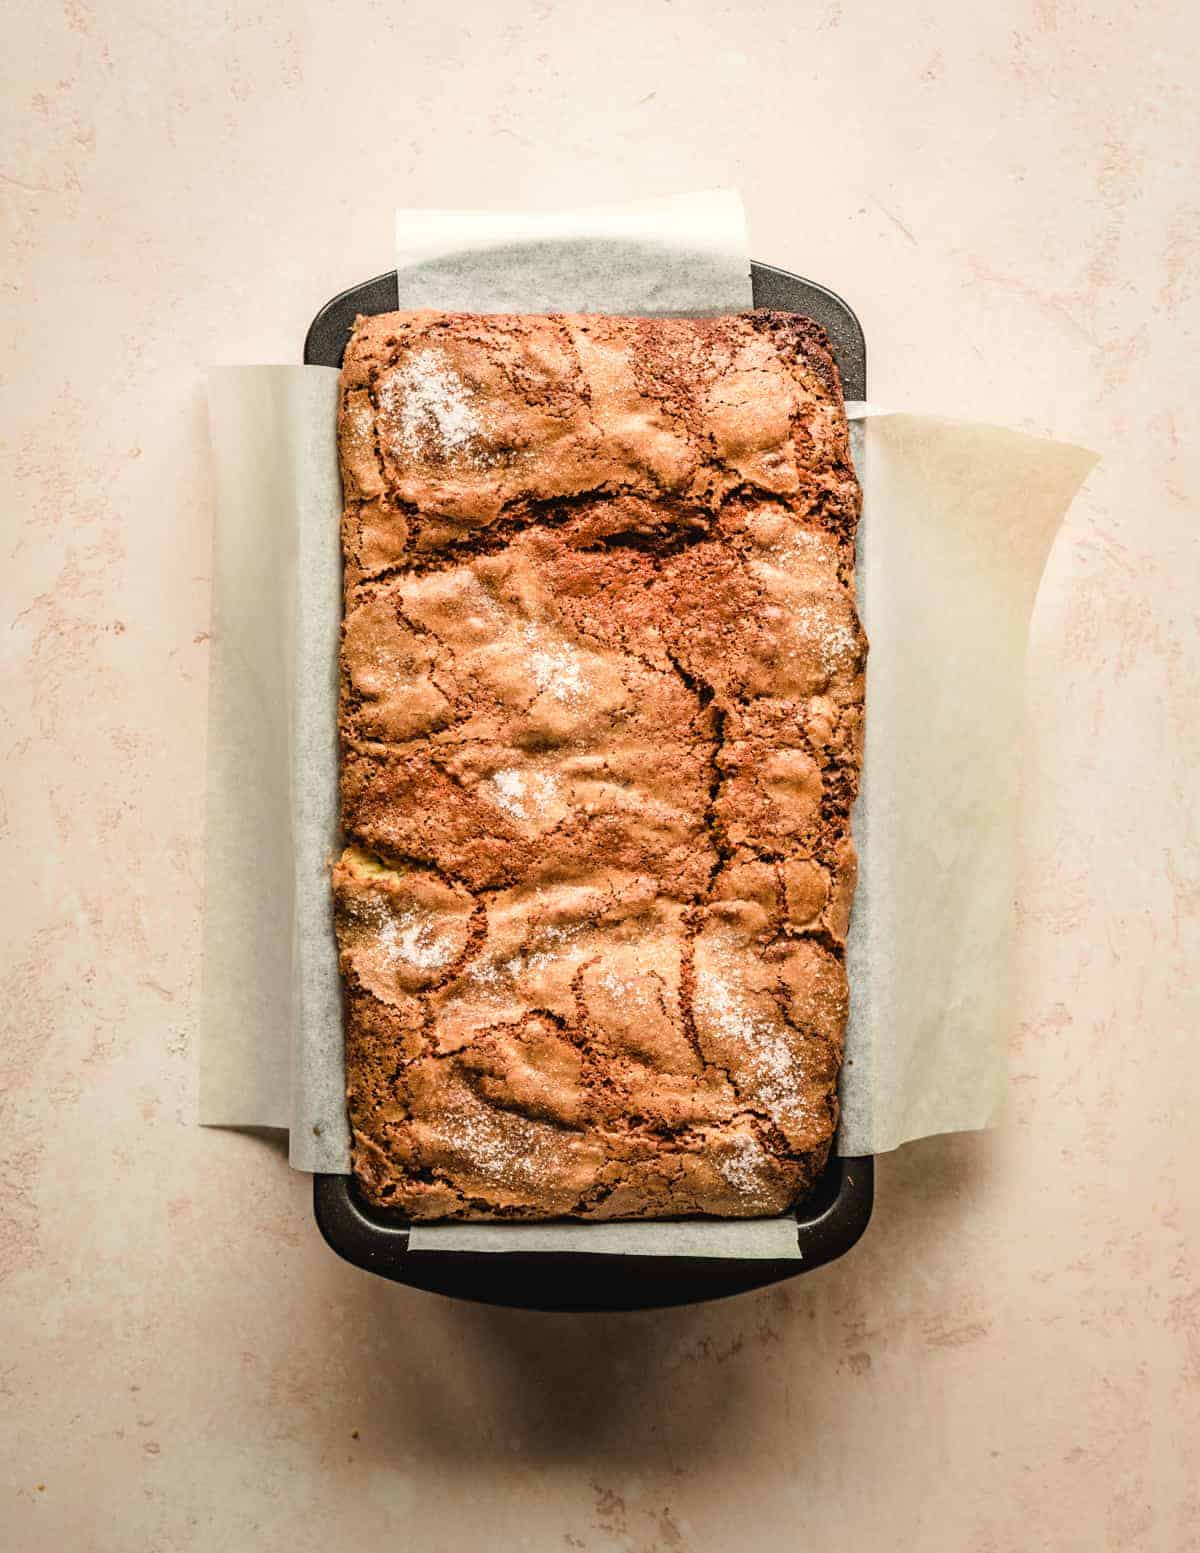 As hard as it will be to wait, let this cream cheese stuffed banana bread cool before slicing.